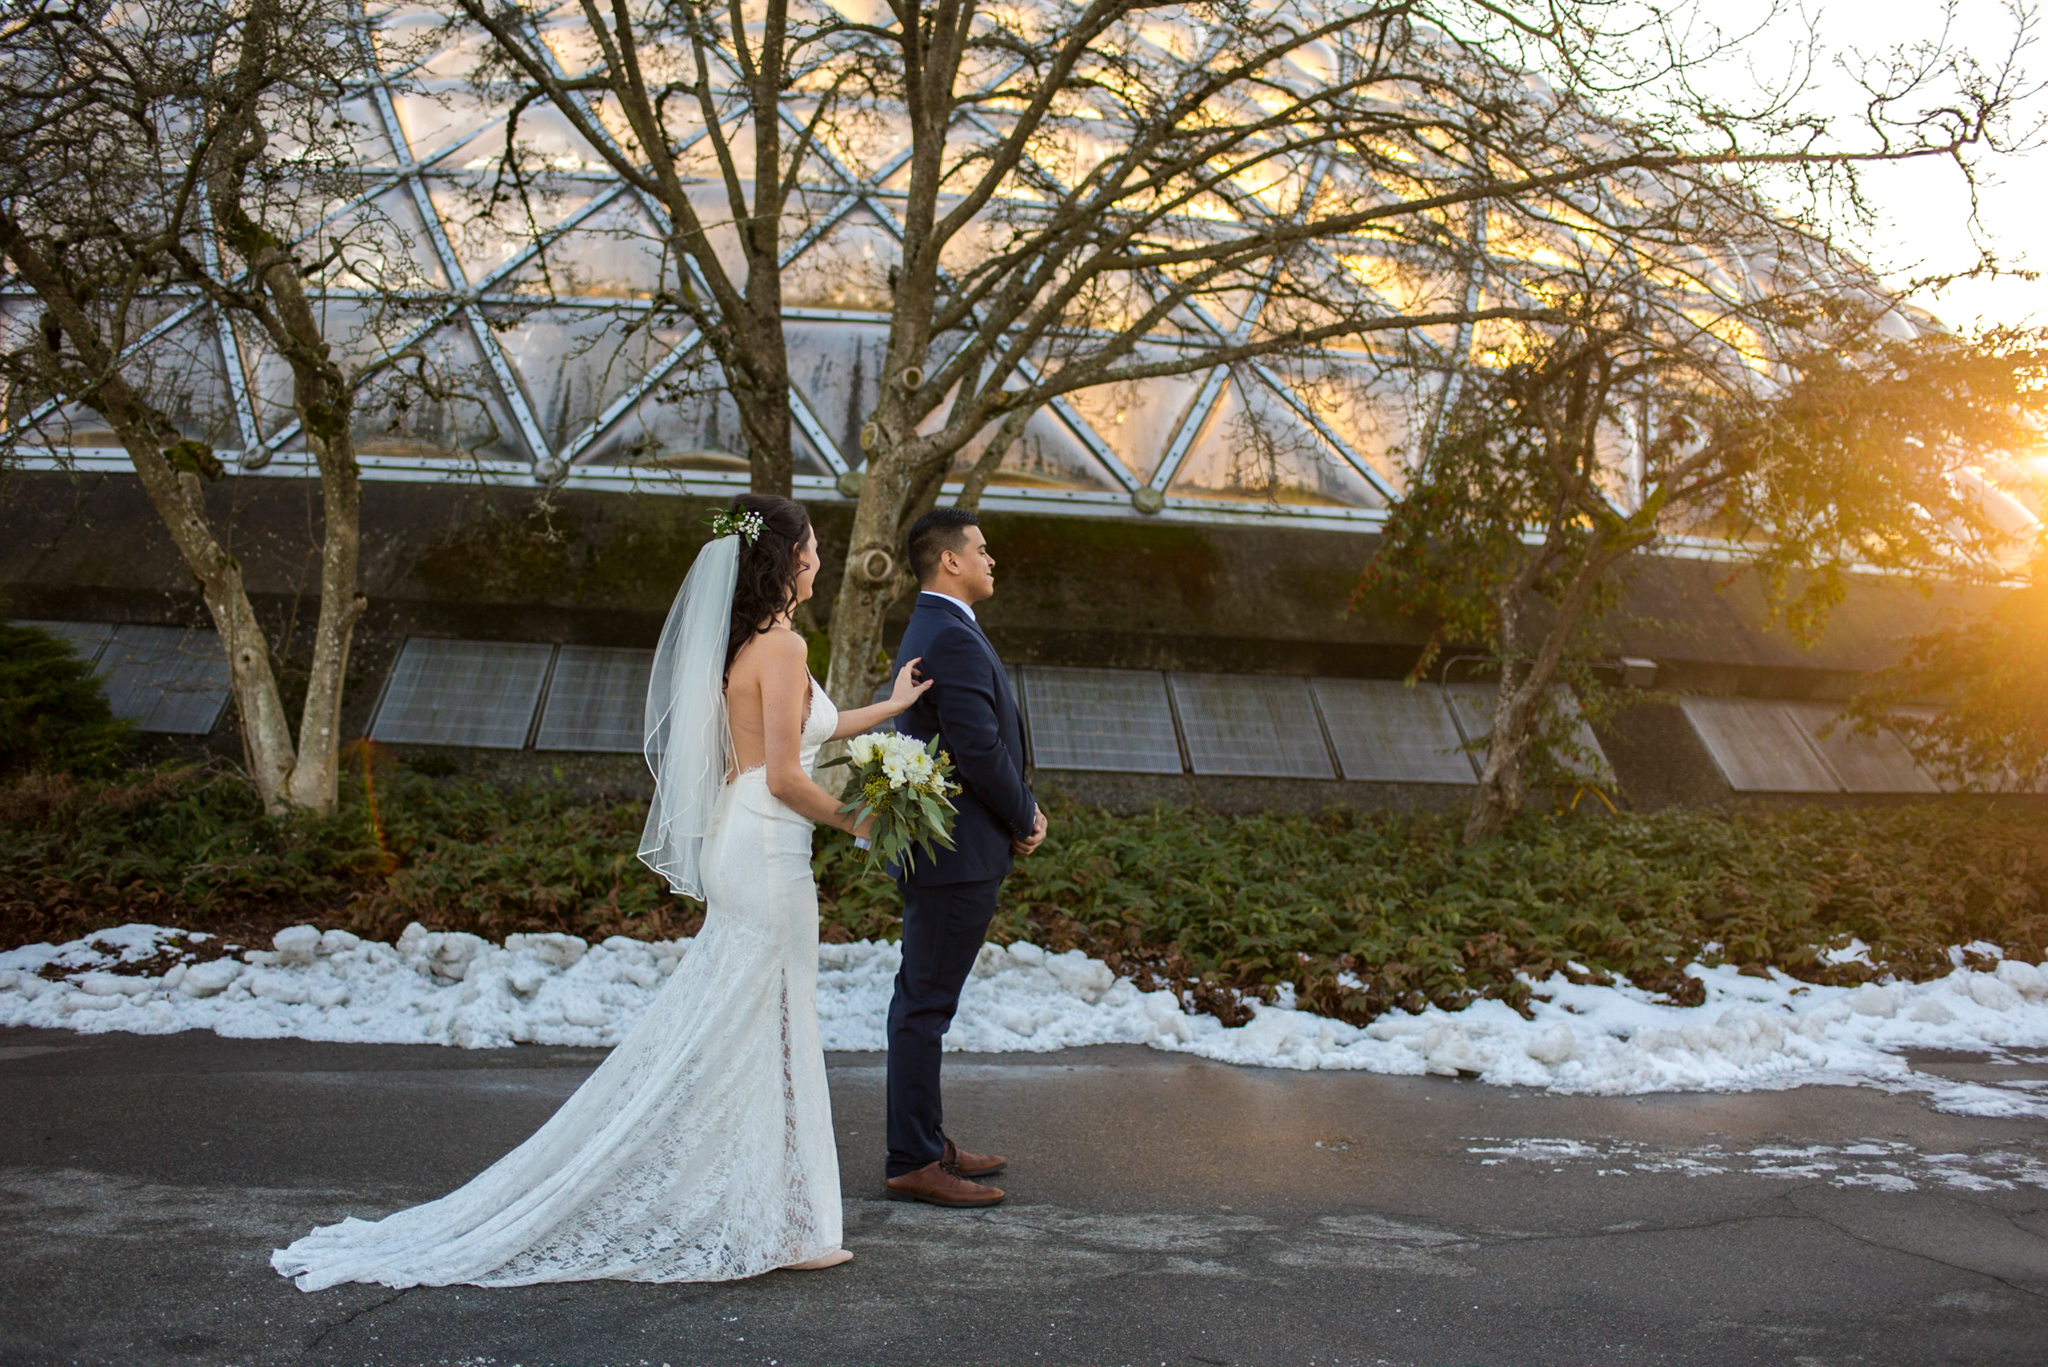 Queen Elizabeth Park Wedding Photographer-7.jpg